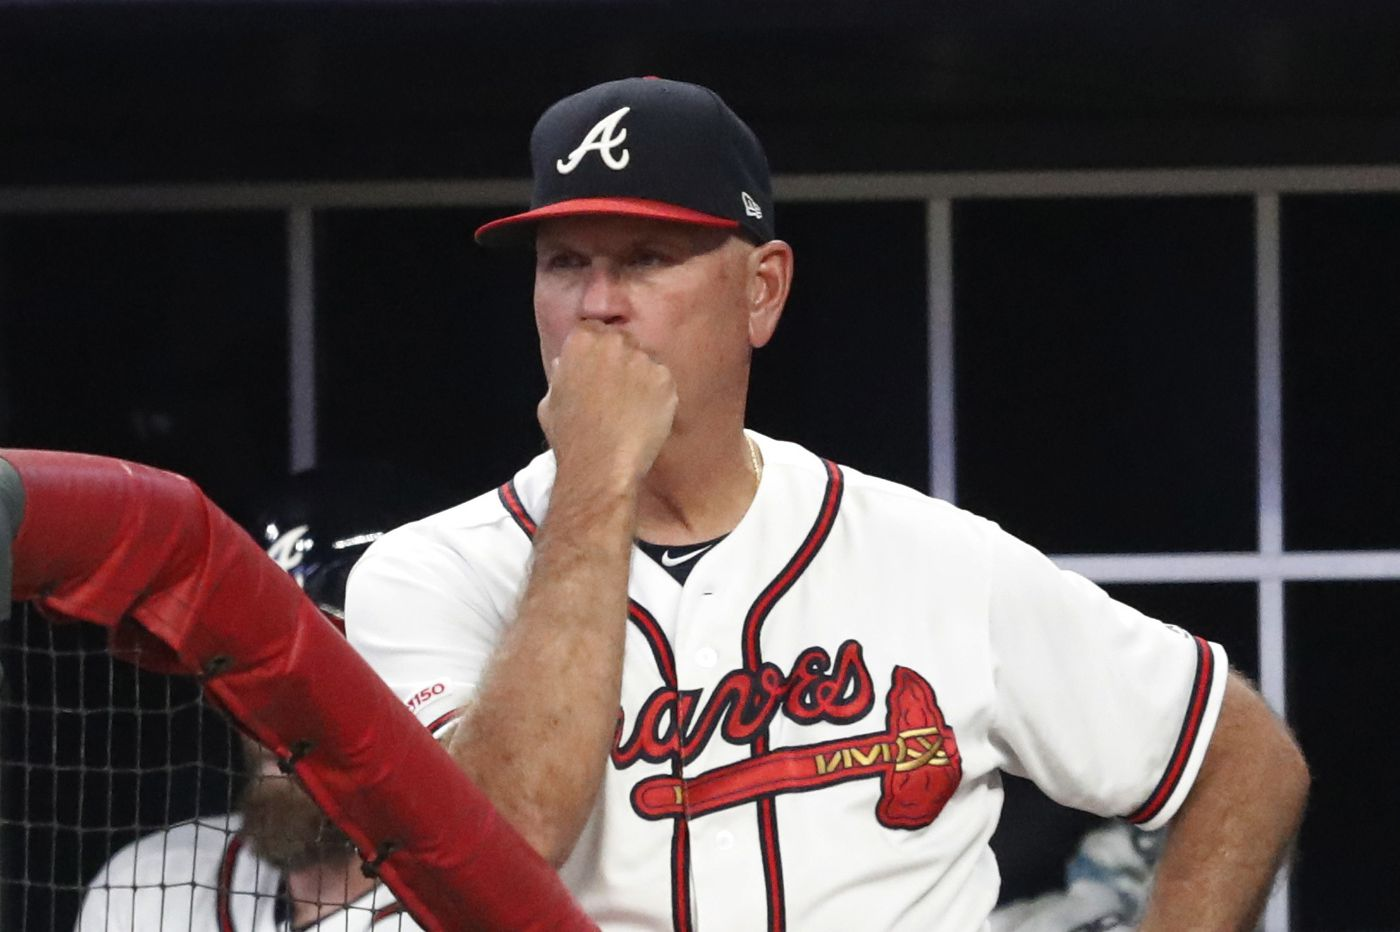 Braves manager Brian Snitker miffed by Phillies manager Gabe Kapler's delayed call to Hector Neris in bullpen